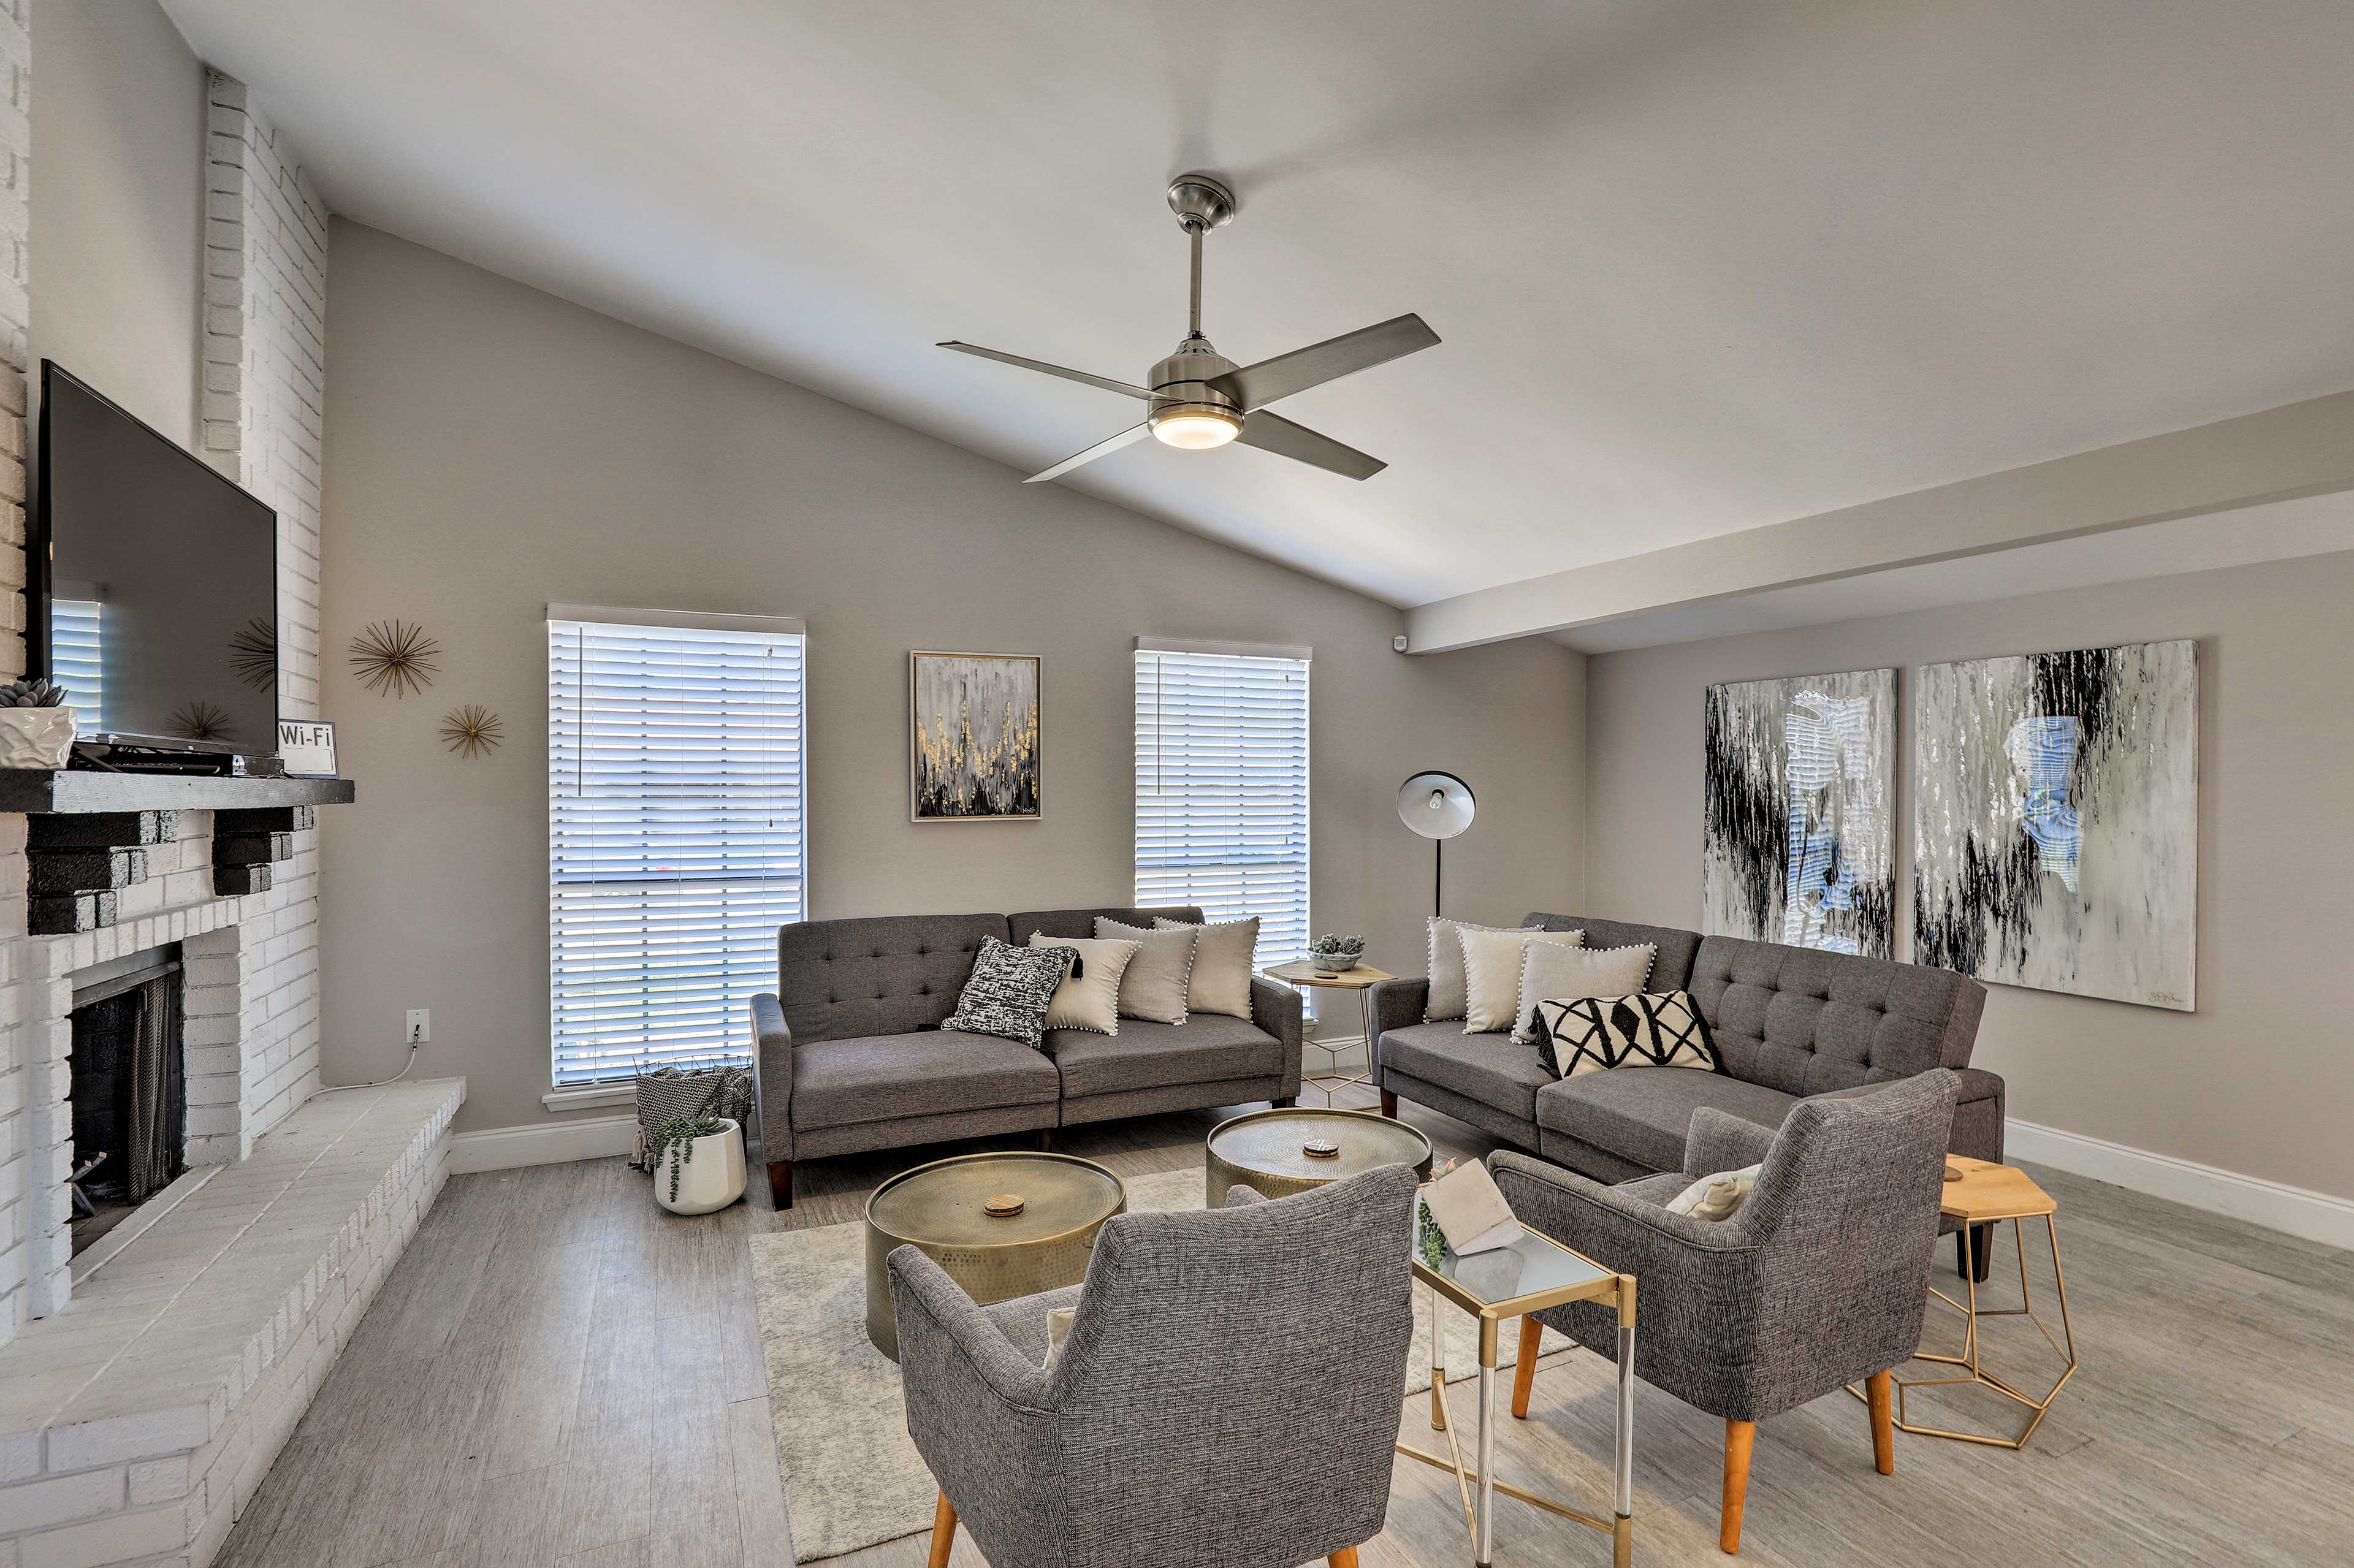 Inside, you will be greeted by vaulted ceilings making for an airy feeling.